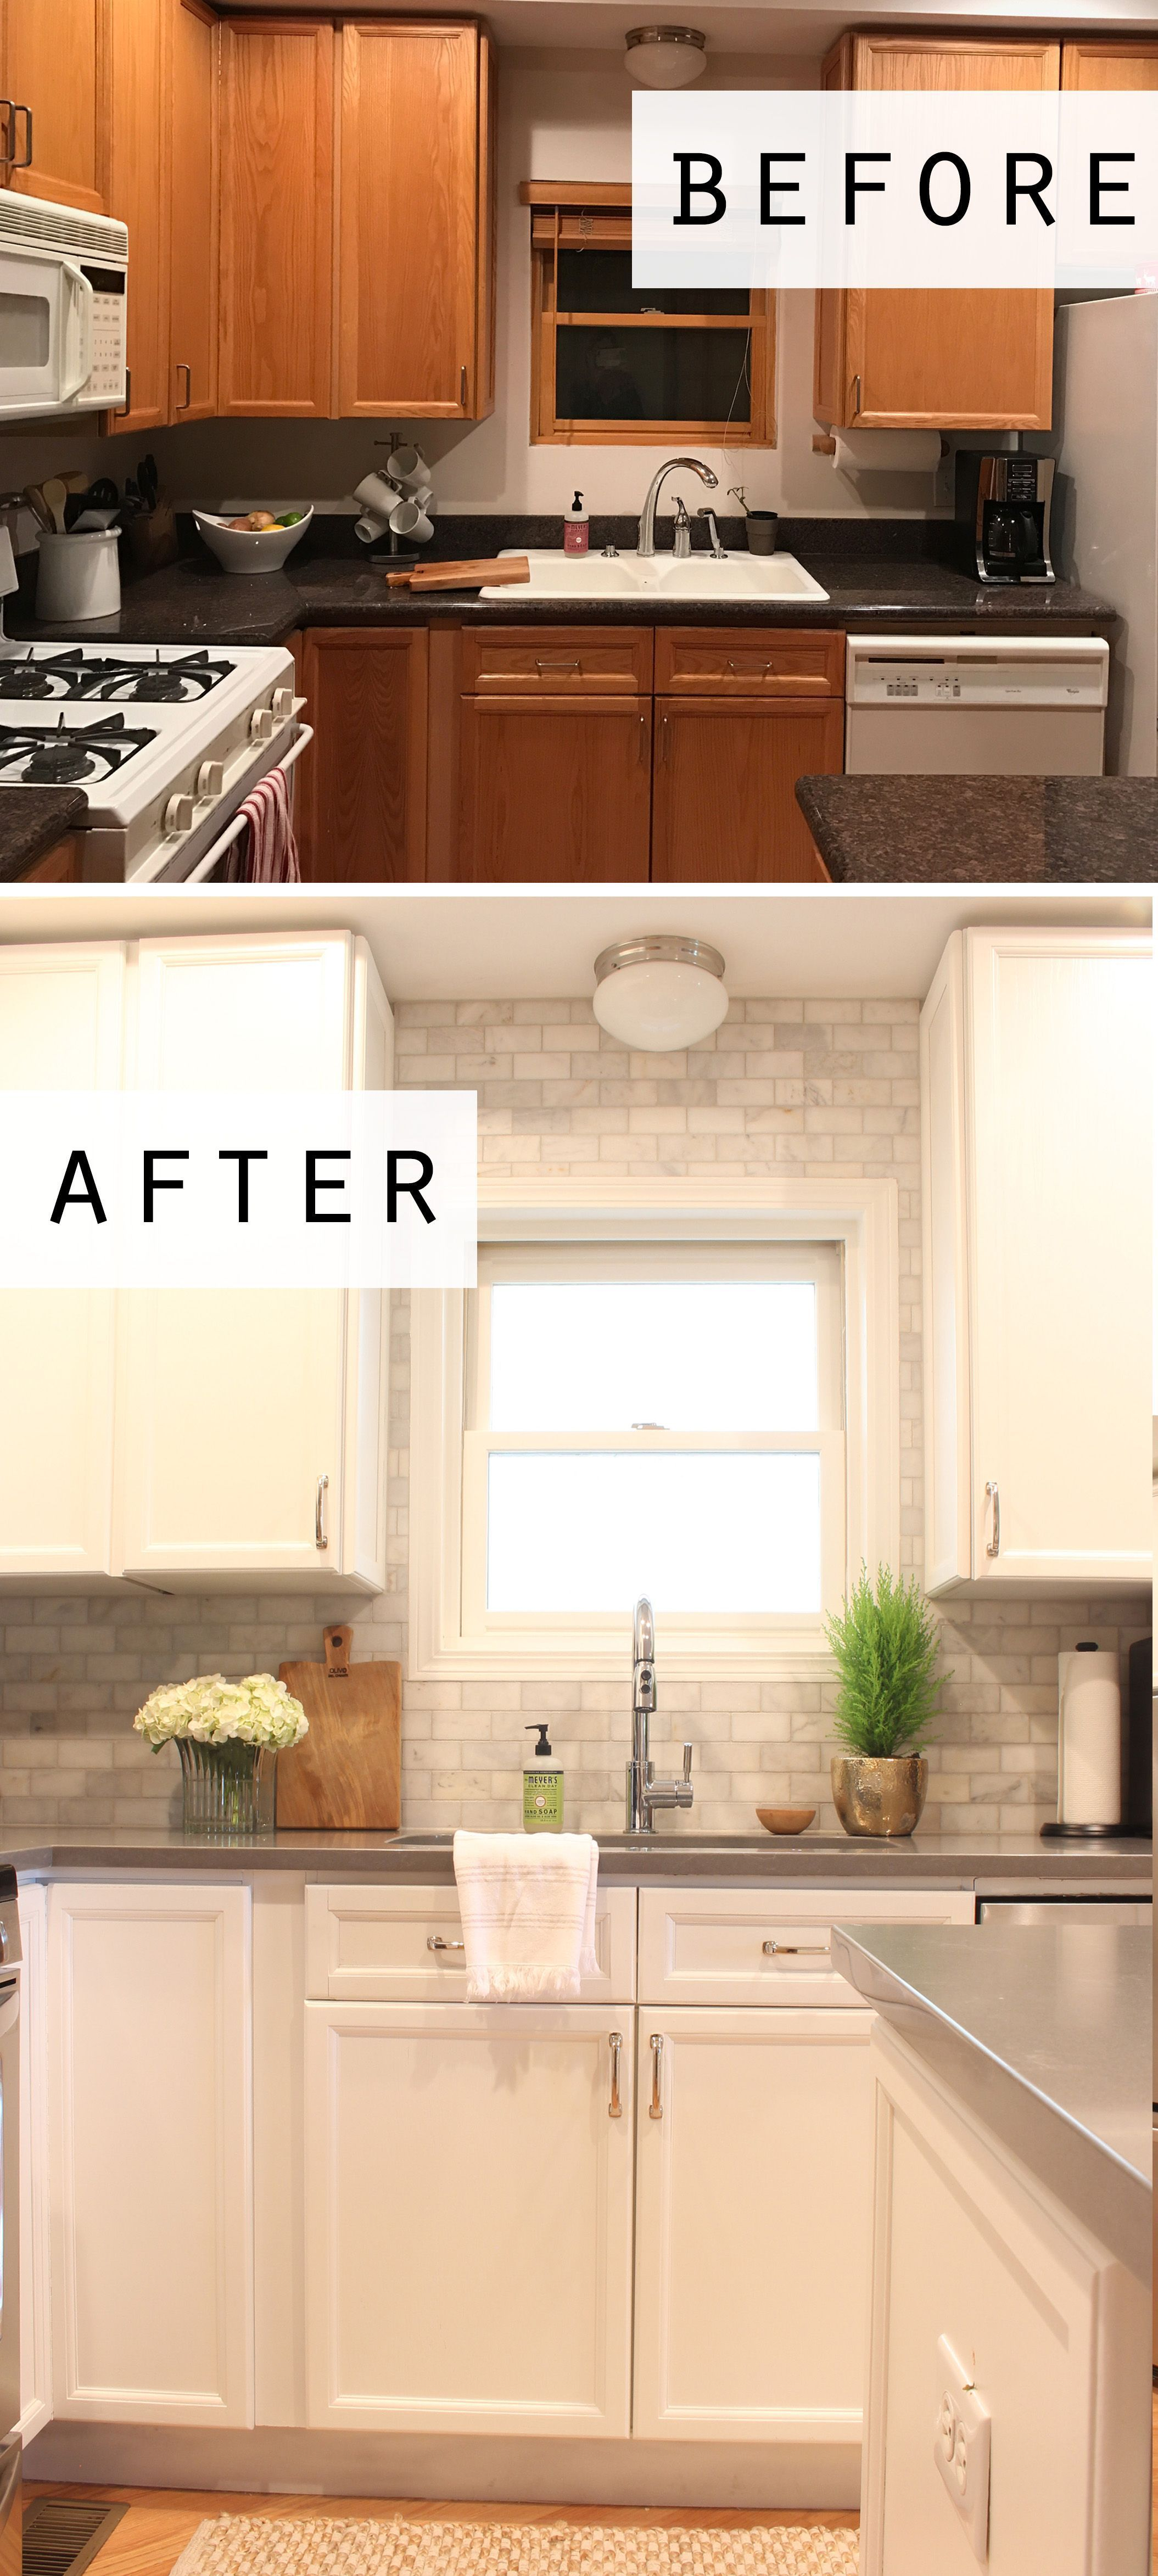 Cottage style before and after kitchen makeover